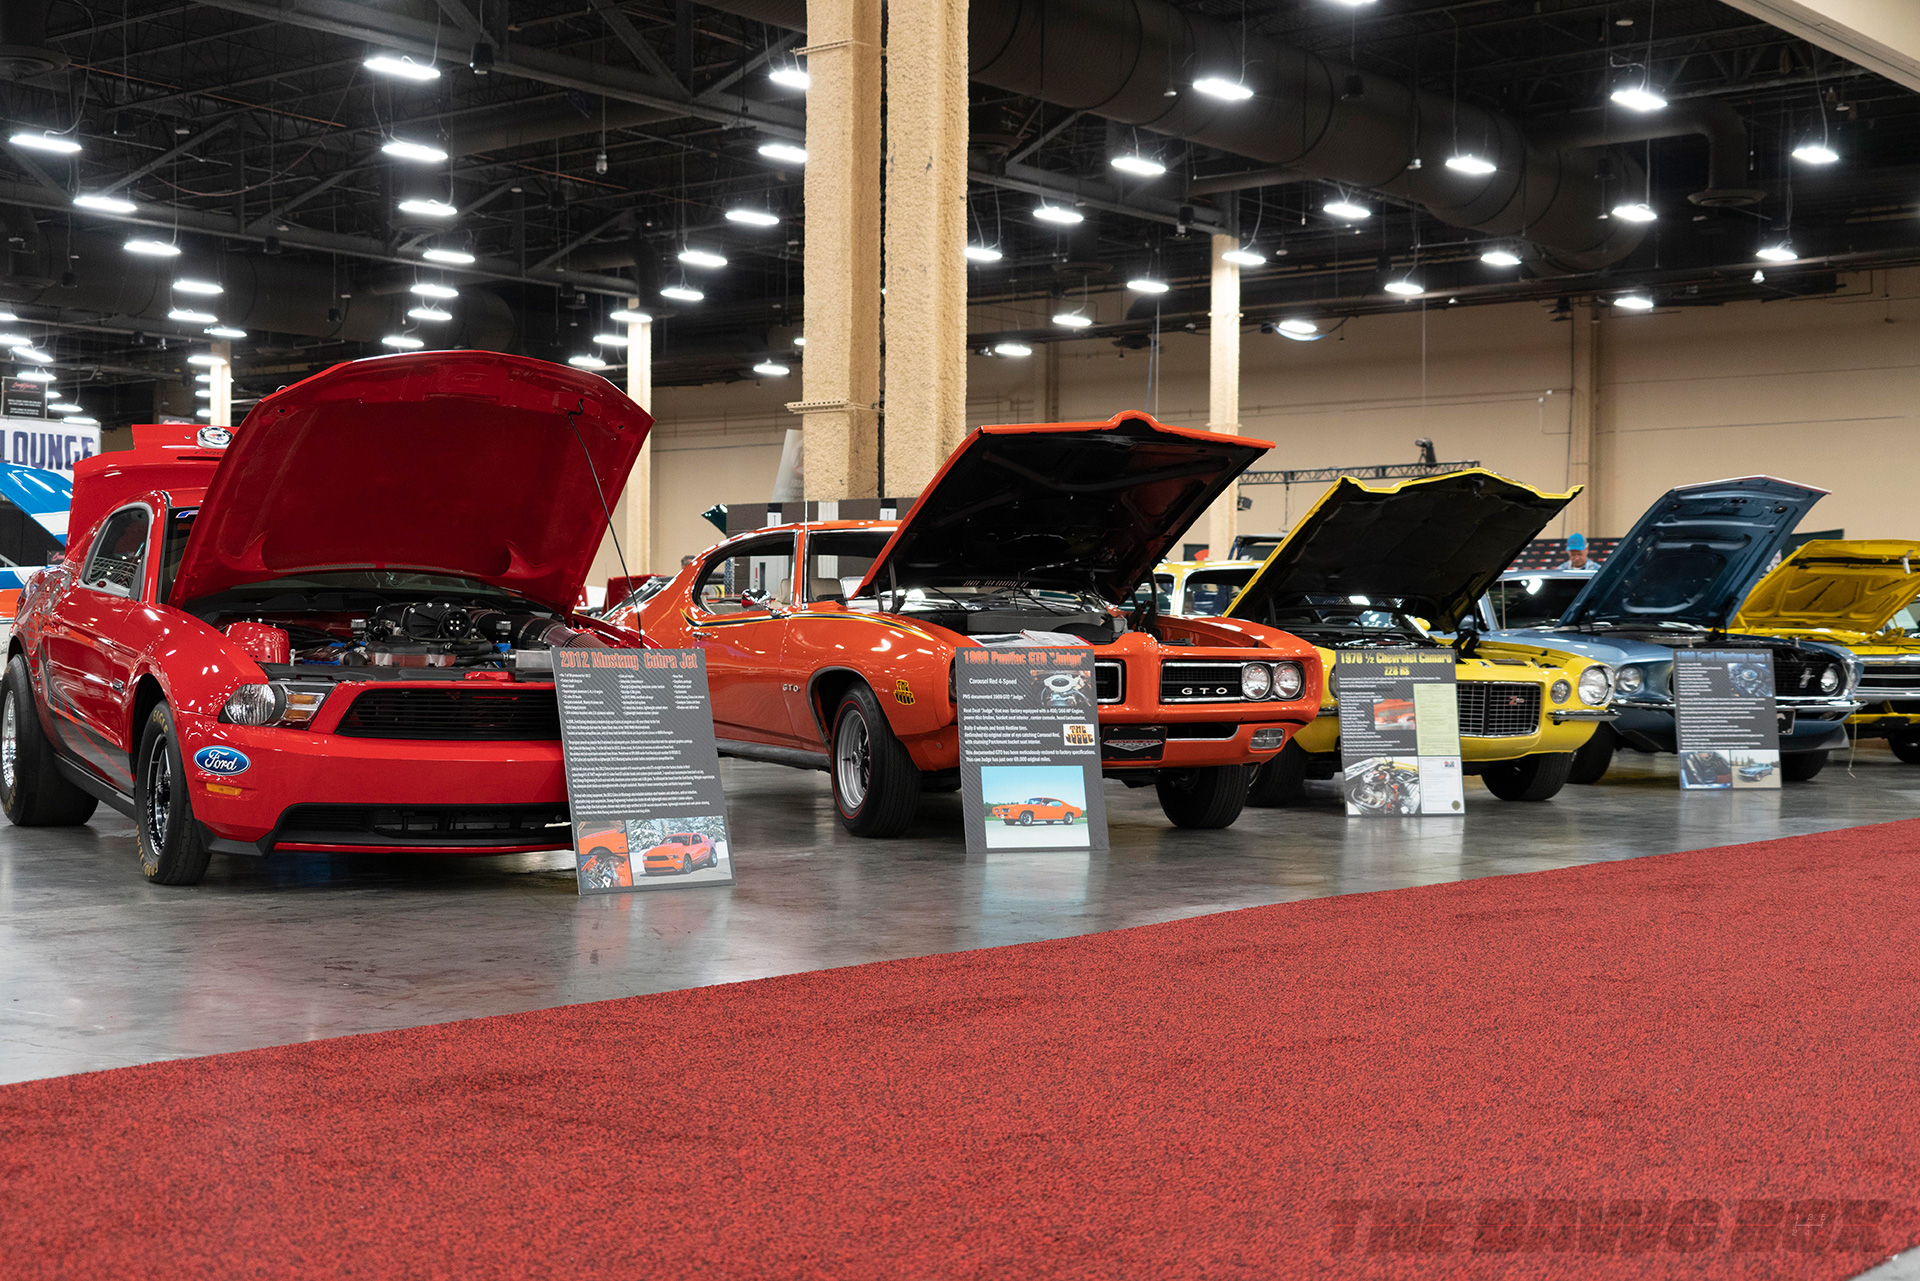 red 2012 ford mustang cobra jet, orange 1966 pontiac GTO, yellow 1970 chevy camaro z28 rs, and blue ford mustang mach 1 at Barrett-Jackson Auction